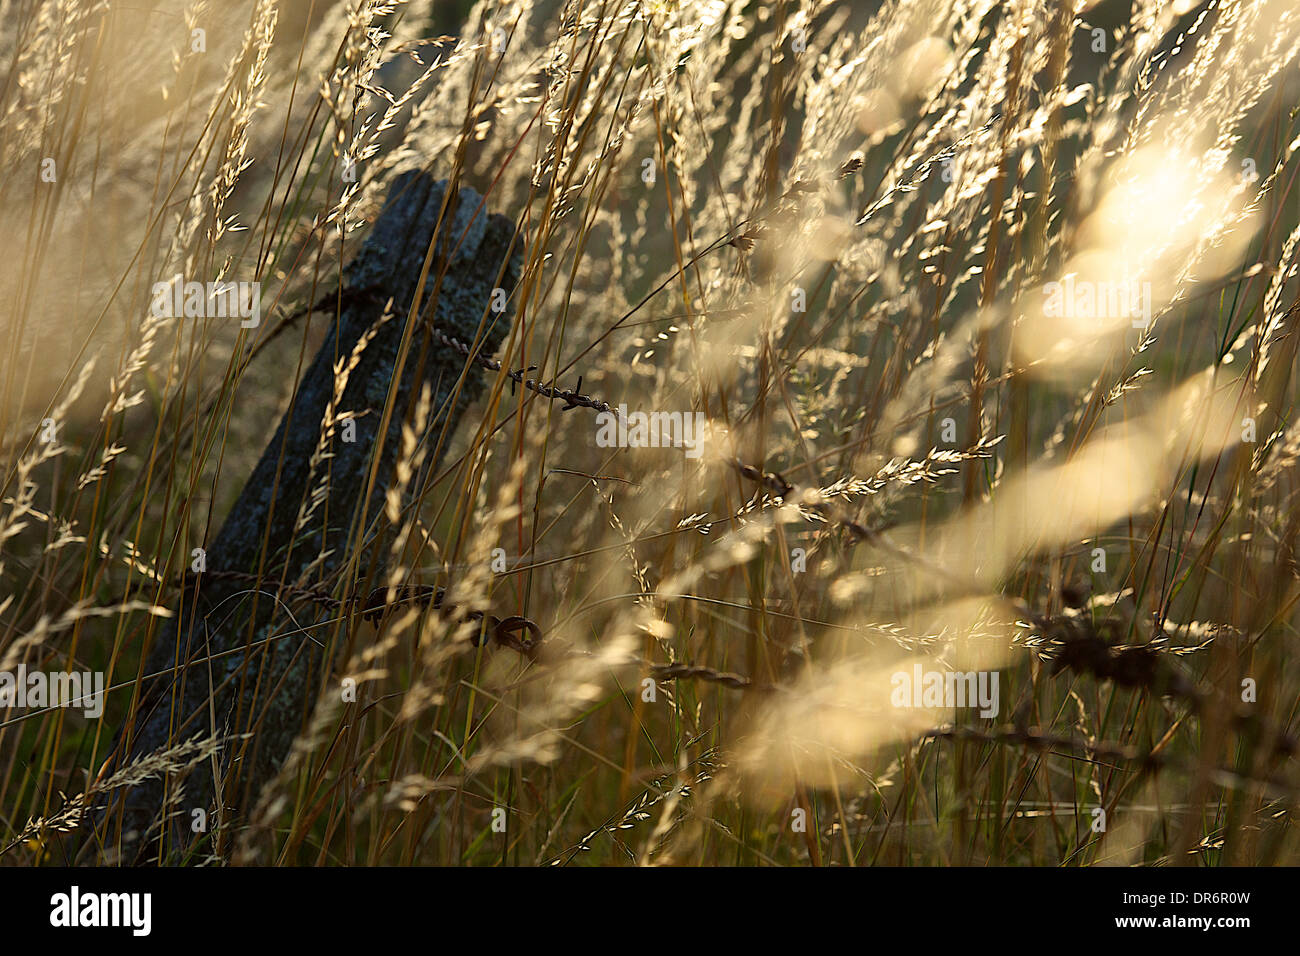 Barbwire and grasses - Stock Image